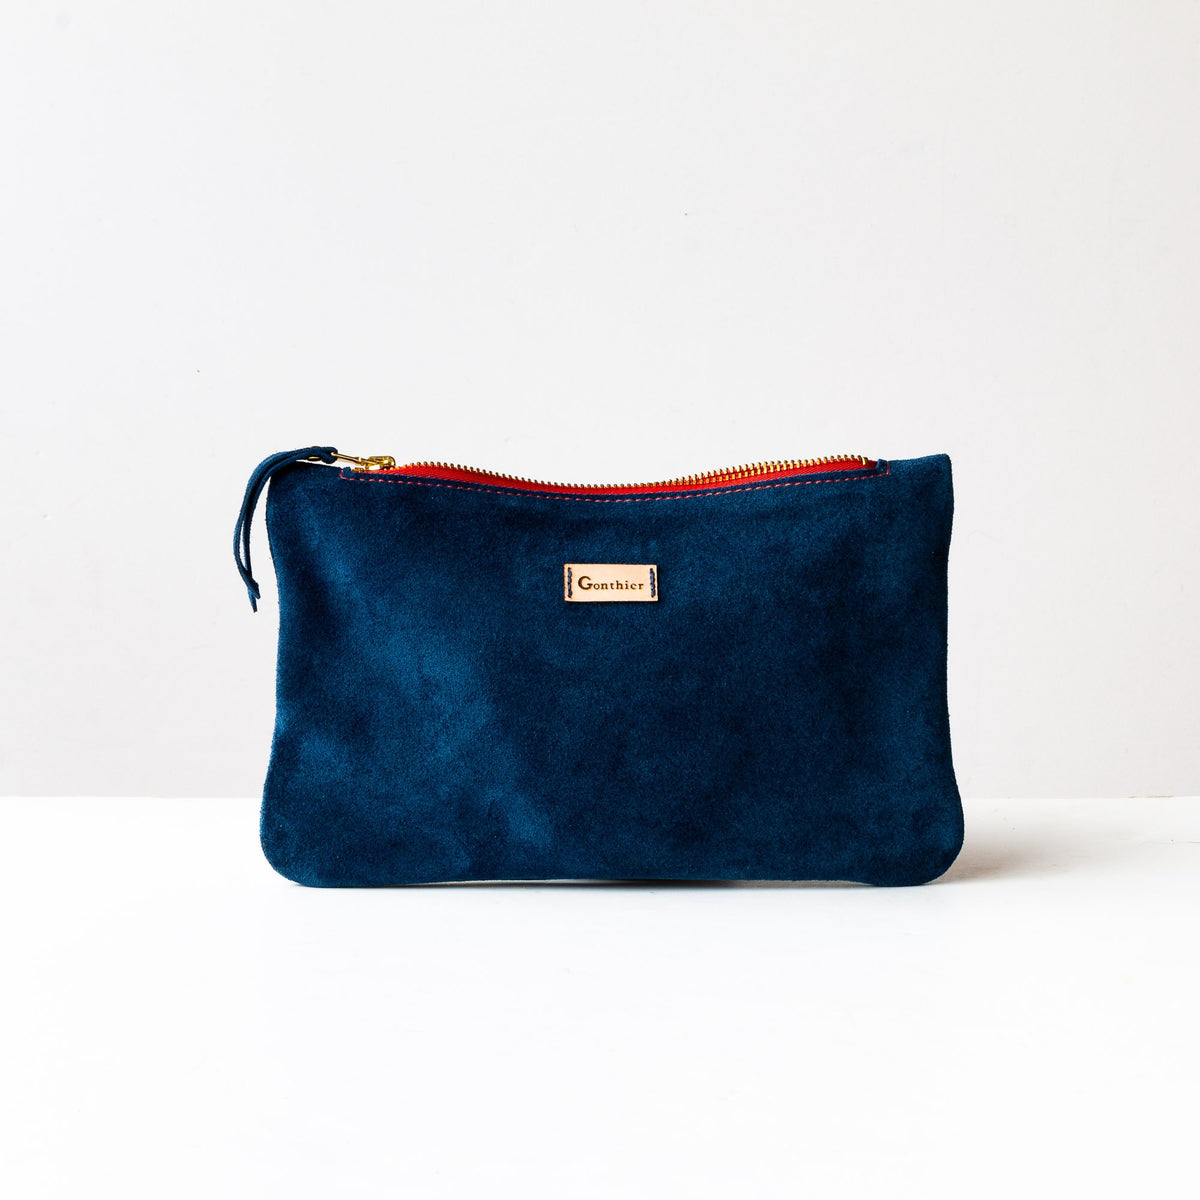 Blue & Orange - Handmade Small Shoulder Bag in Suede Calfskin - Sold by Chic & Basta